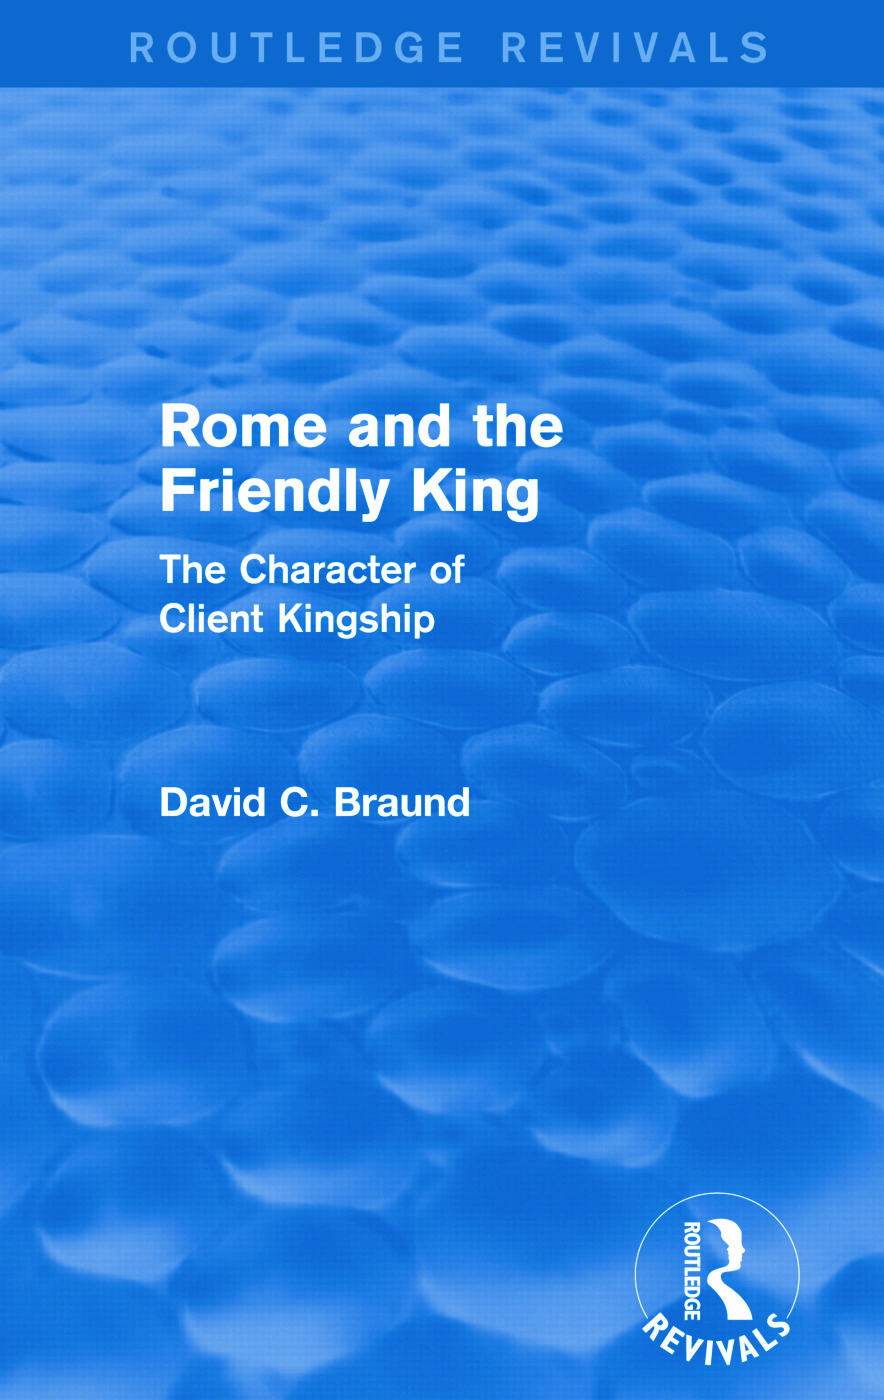 Rome and the Firendly King (Routledge Revivals): The Character of Client Kingship, 1st Edition (Paperback) book cover